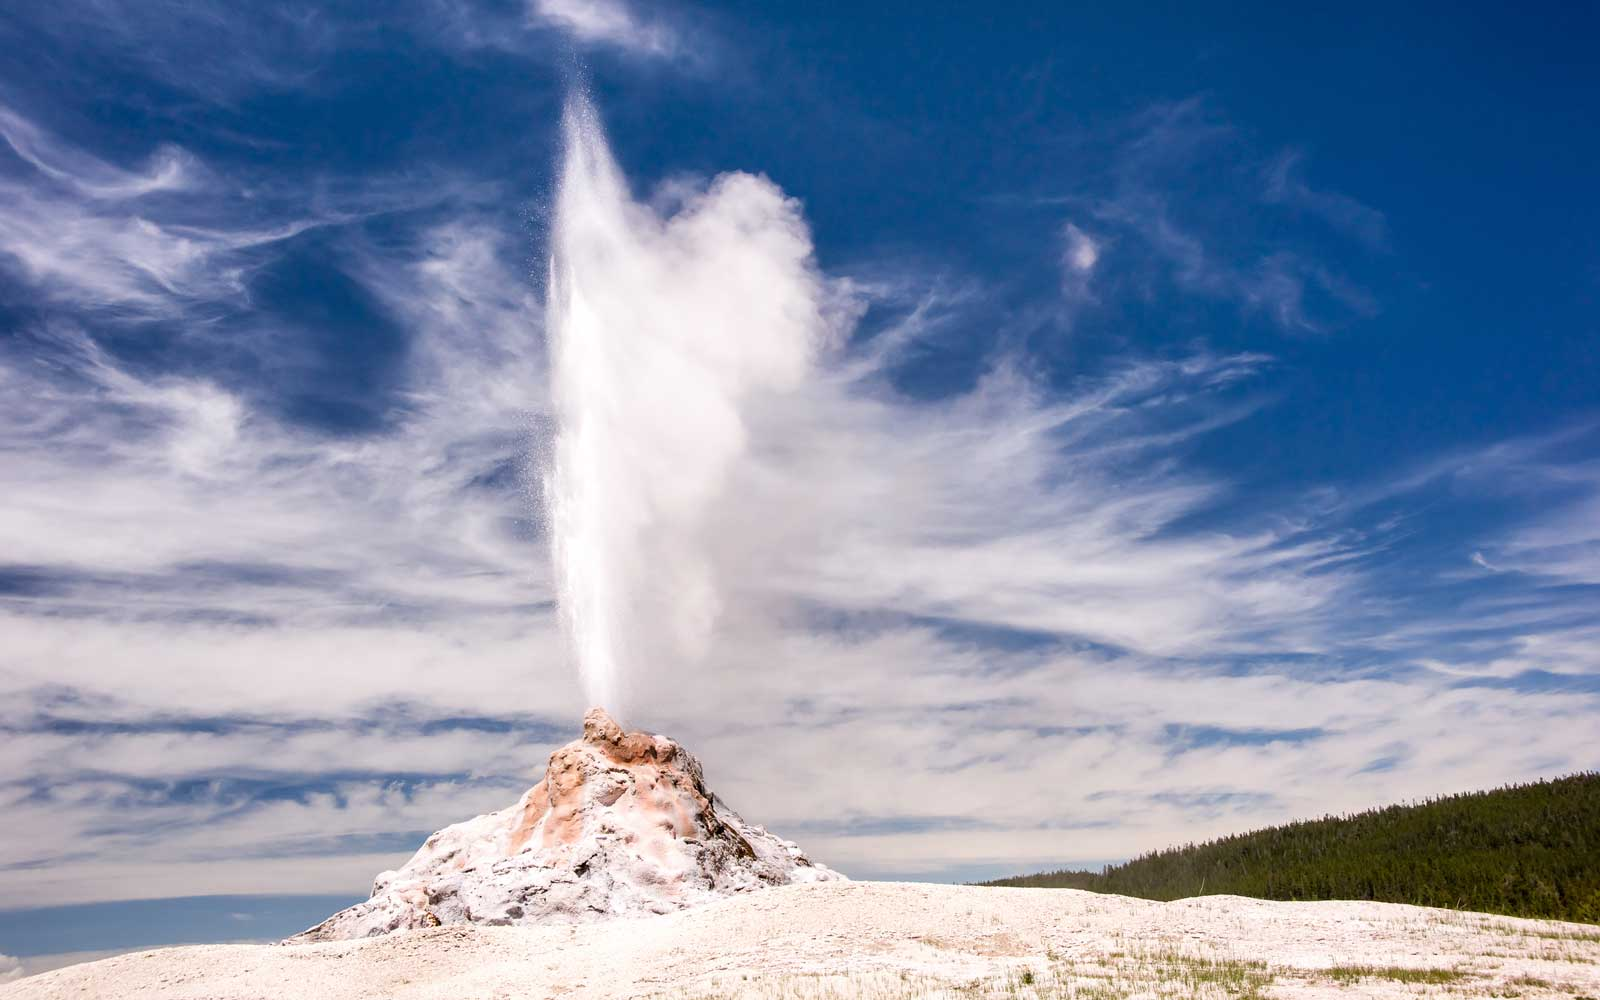 White Dome Geyser, in Yellowstone National Park